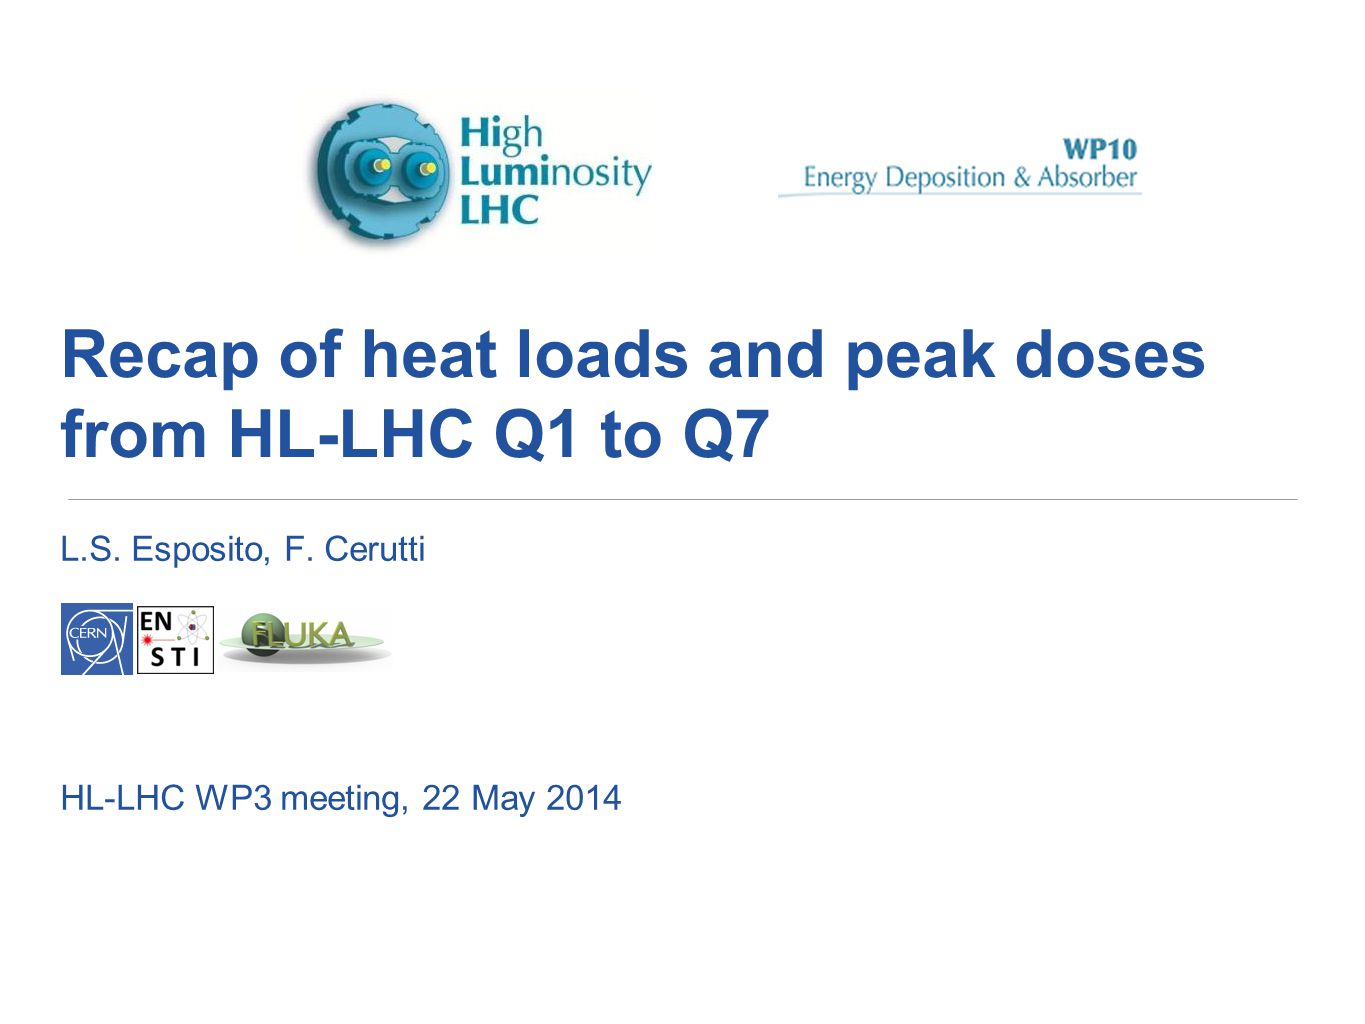 Recap of heat loads and peak doses from HL-LHC Q1 to Q7 L.S.